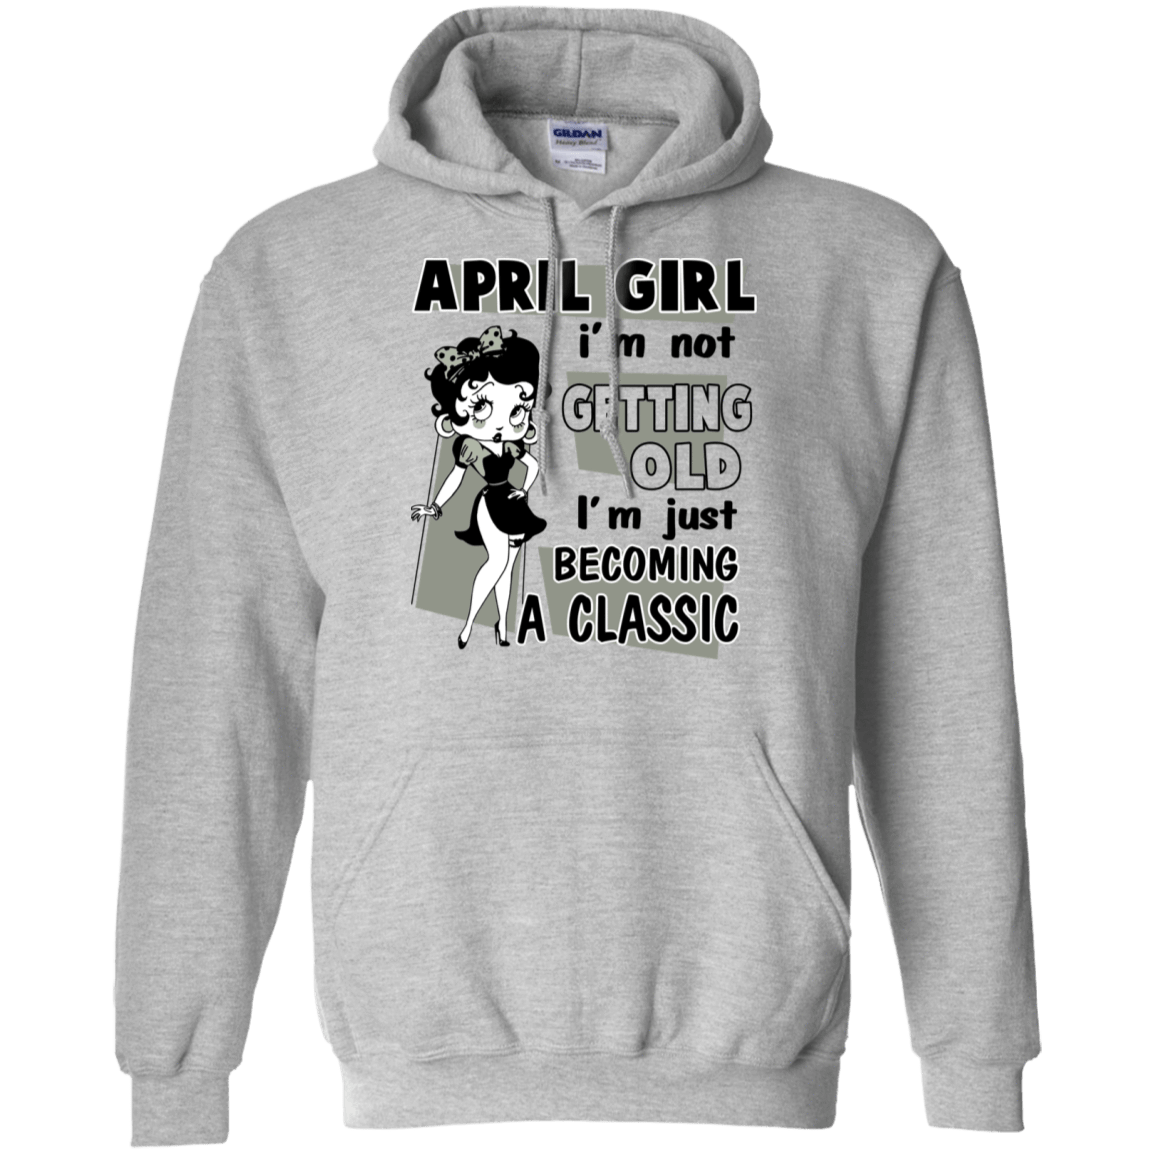 April Girl I'm Not Getting Old I'm Just Becoming A Classic T-Shirts, Hoodies 541-4741-77495251-23111 - Tee Ript